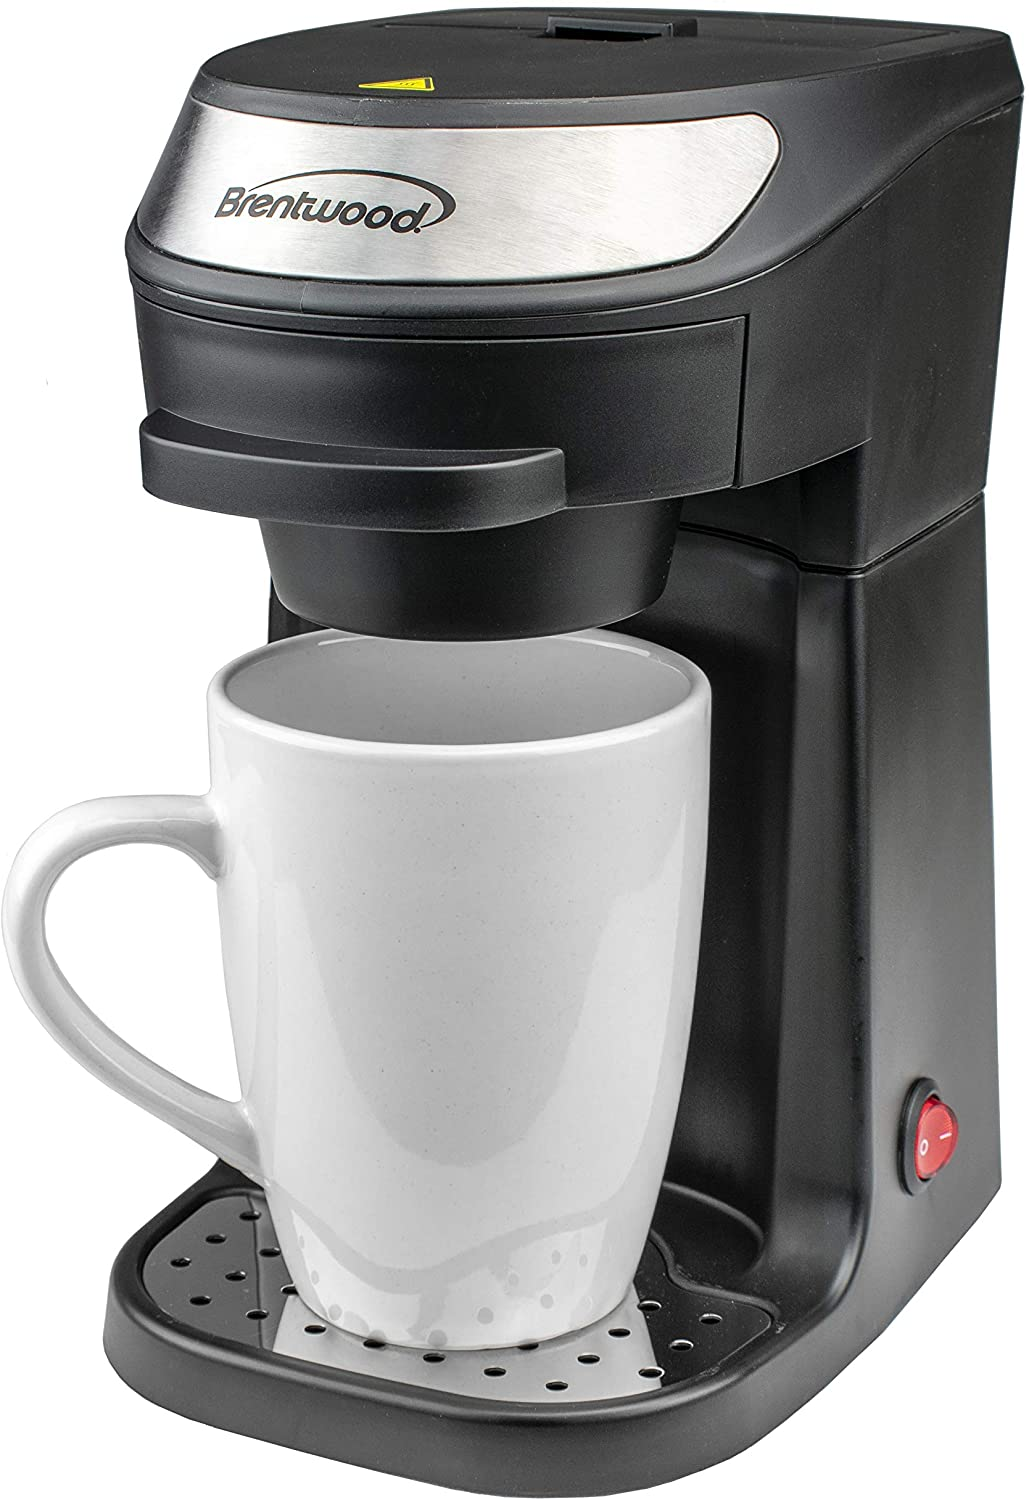 Brentwood TS-111BK Single Serve Coffee Maker with Mug, Black